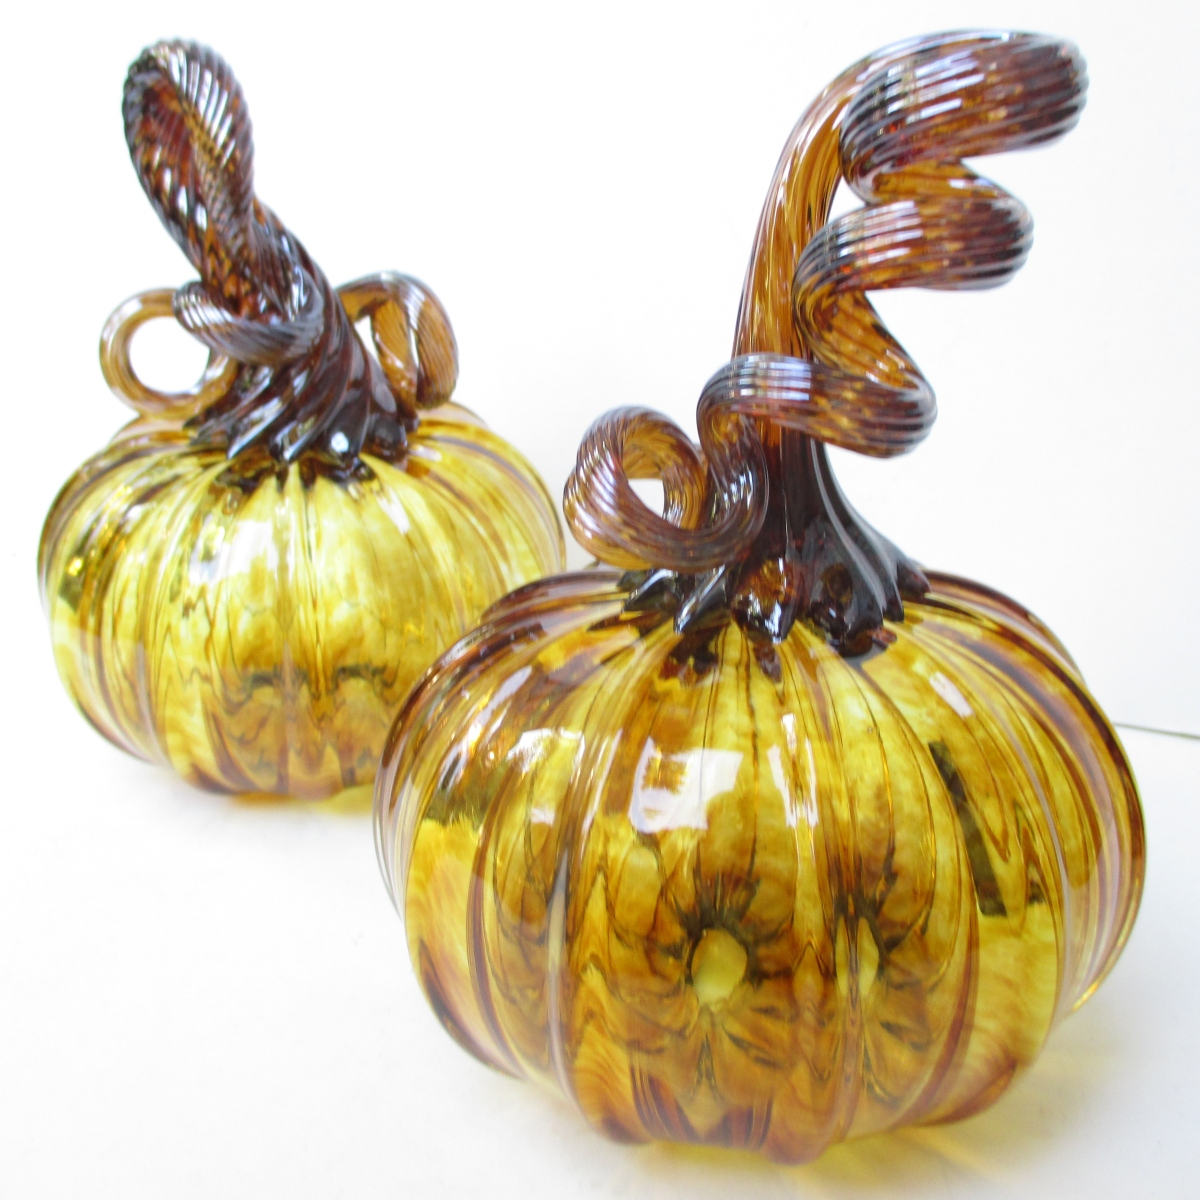 blown glass pumpkins amber pair two curly stems brown glass